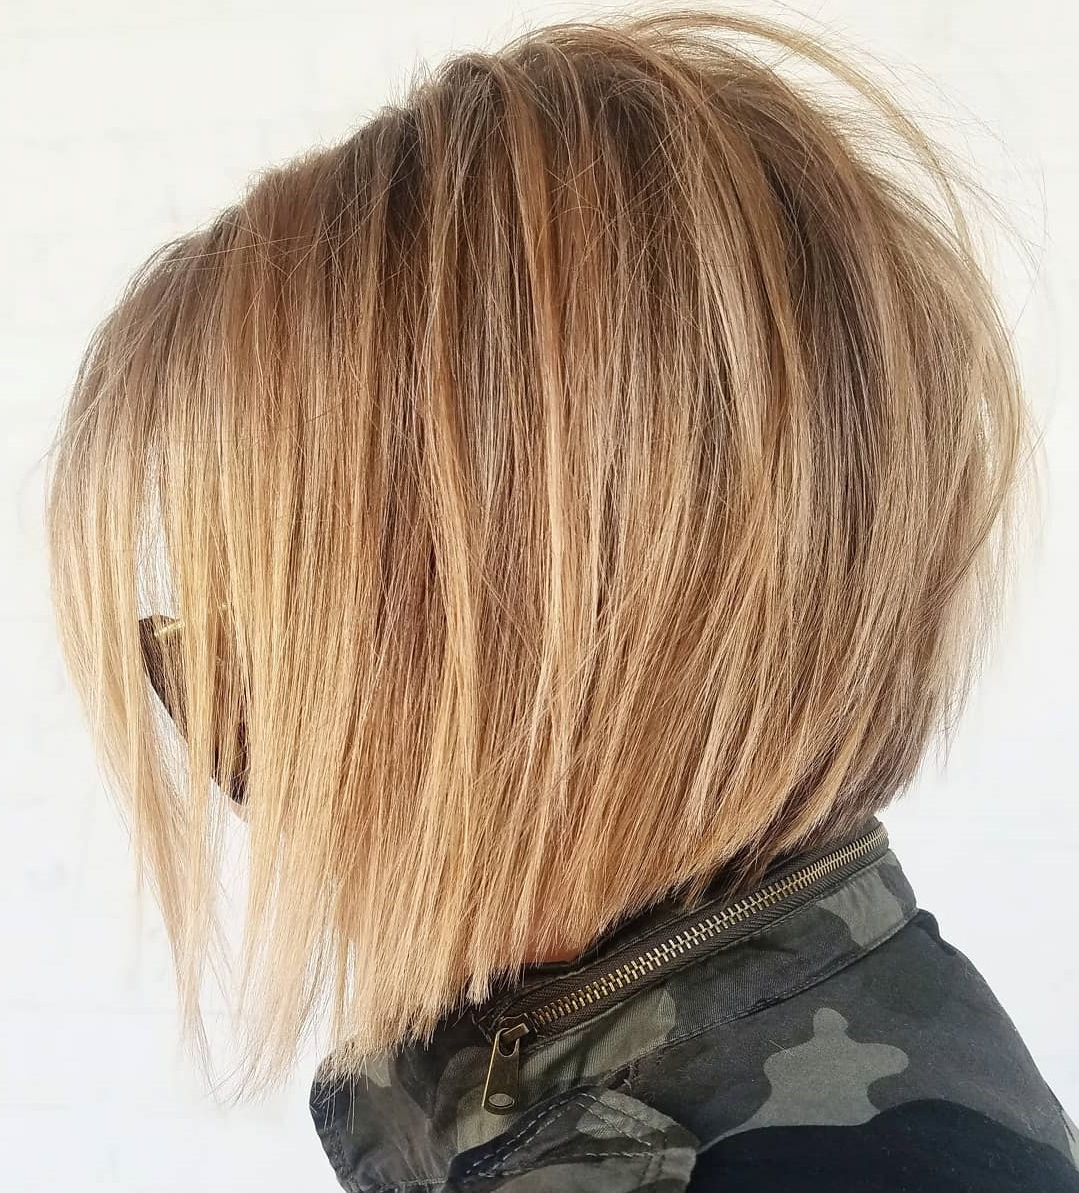 Popular Choppy Bright Blonde Bob Hairstyles For 45 Short Hairstyles For Fine Hair To Rock In 2019 (Gallery 20 of 20)